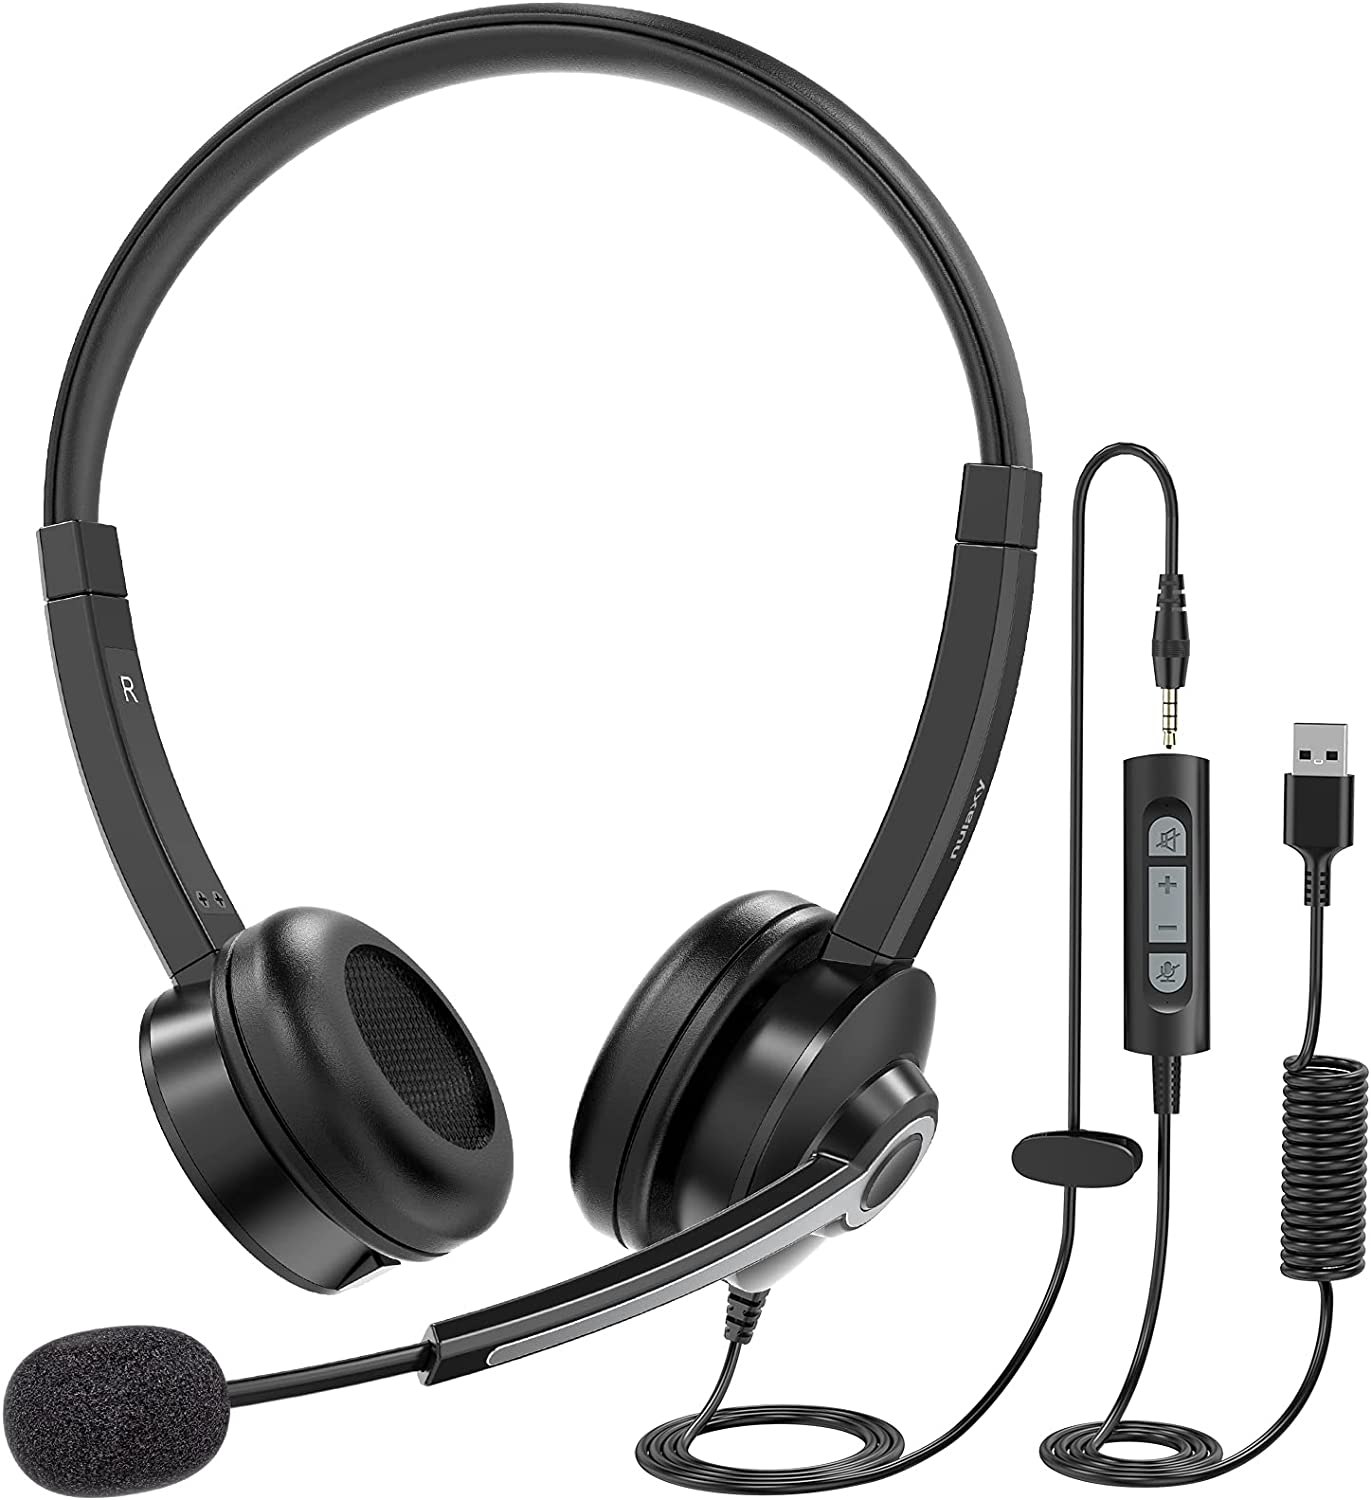 Nulaxy USB Headset with Microphone, 3.5mm Jack Headphones with Noise Cancelling Microphone, Inline Control, Lightweight Business Headset, PC Headset for Skype, Webinar, Office, Classroom, Home